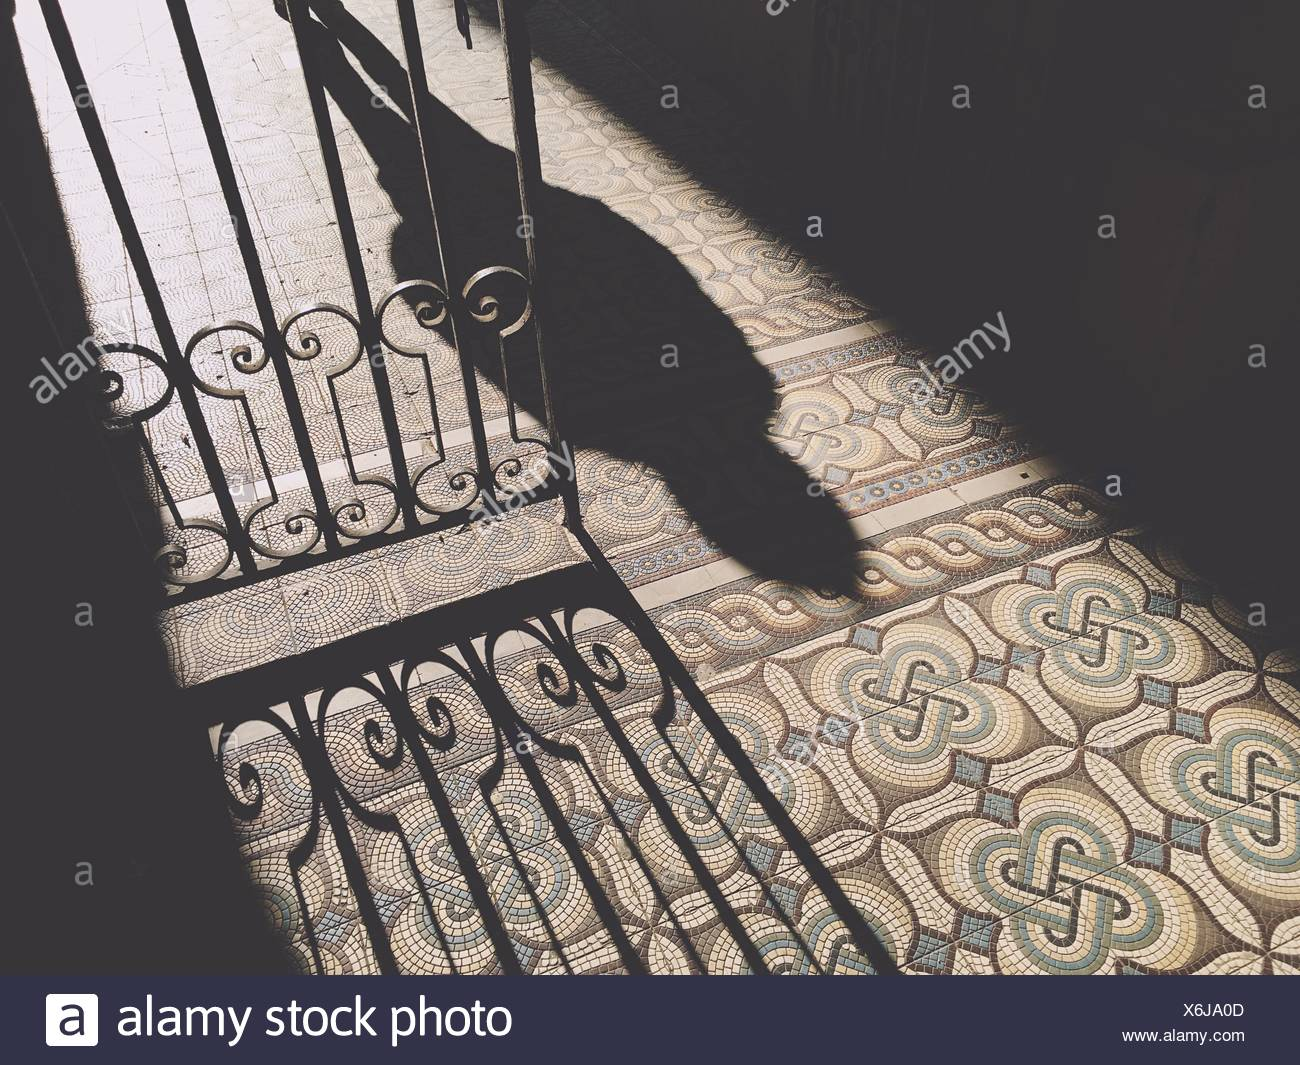 Shadow Of Person On Floor - Stock Image